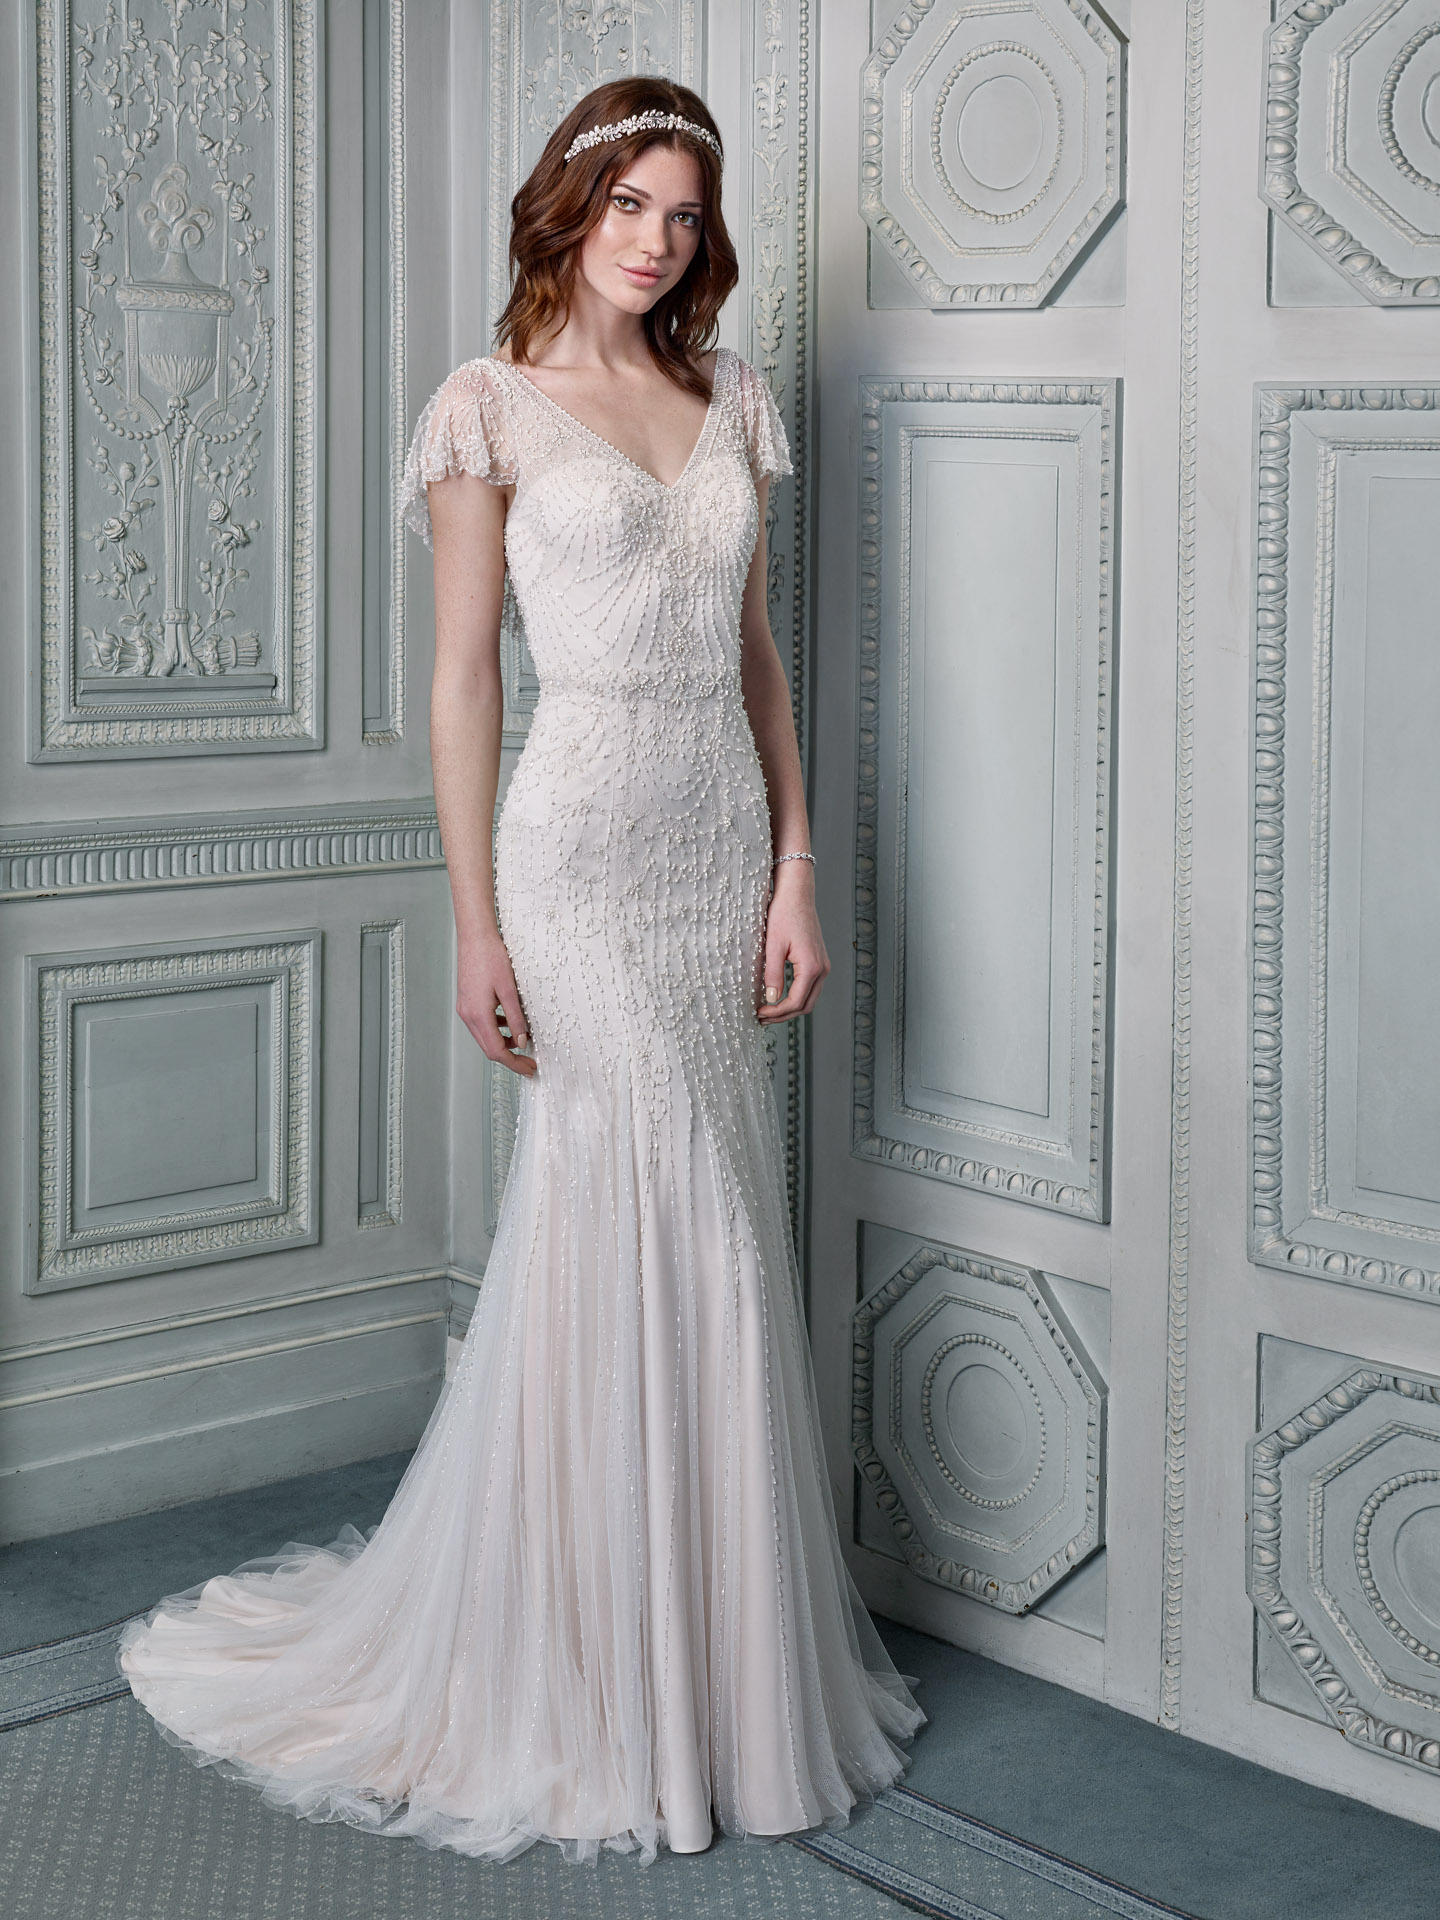 1920s Wedding Dresses 19 Gorgeous Gowns To Add Some Gatsby Glam To Your Bridal Style